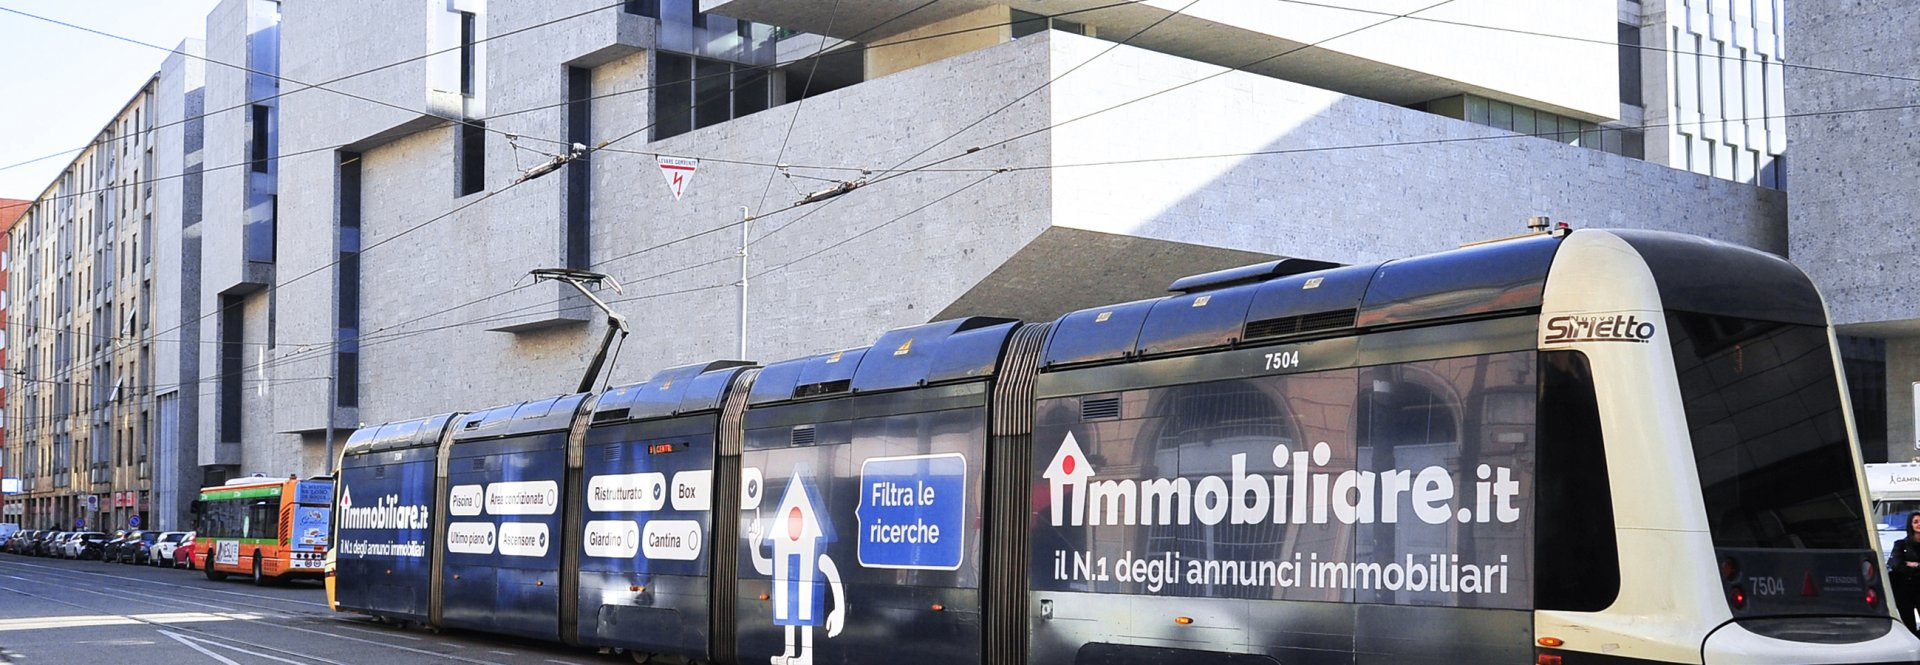 Immobiliare-it on the road with its first rail campaign